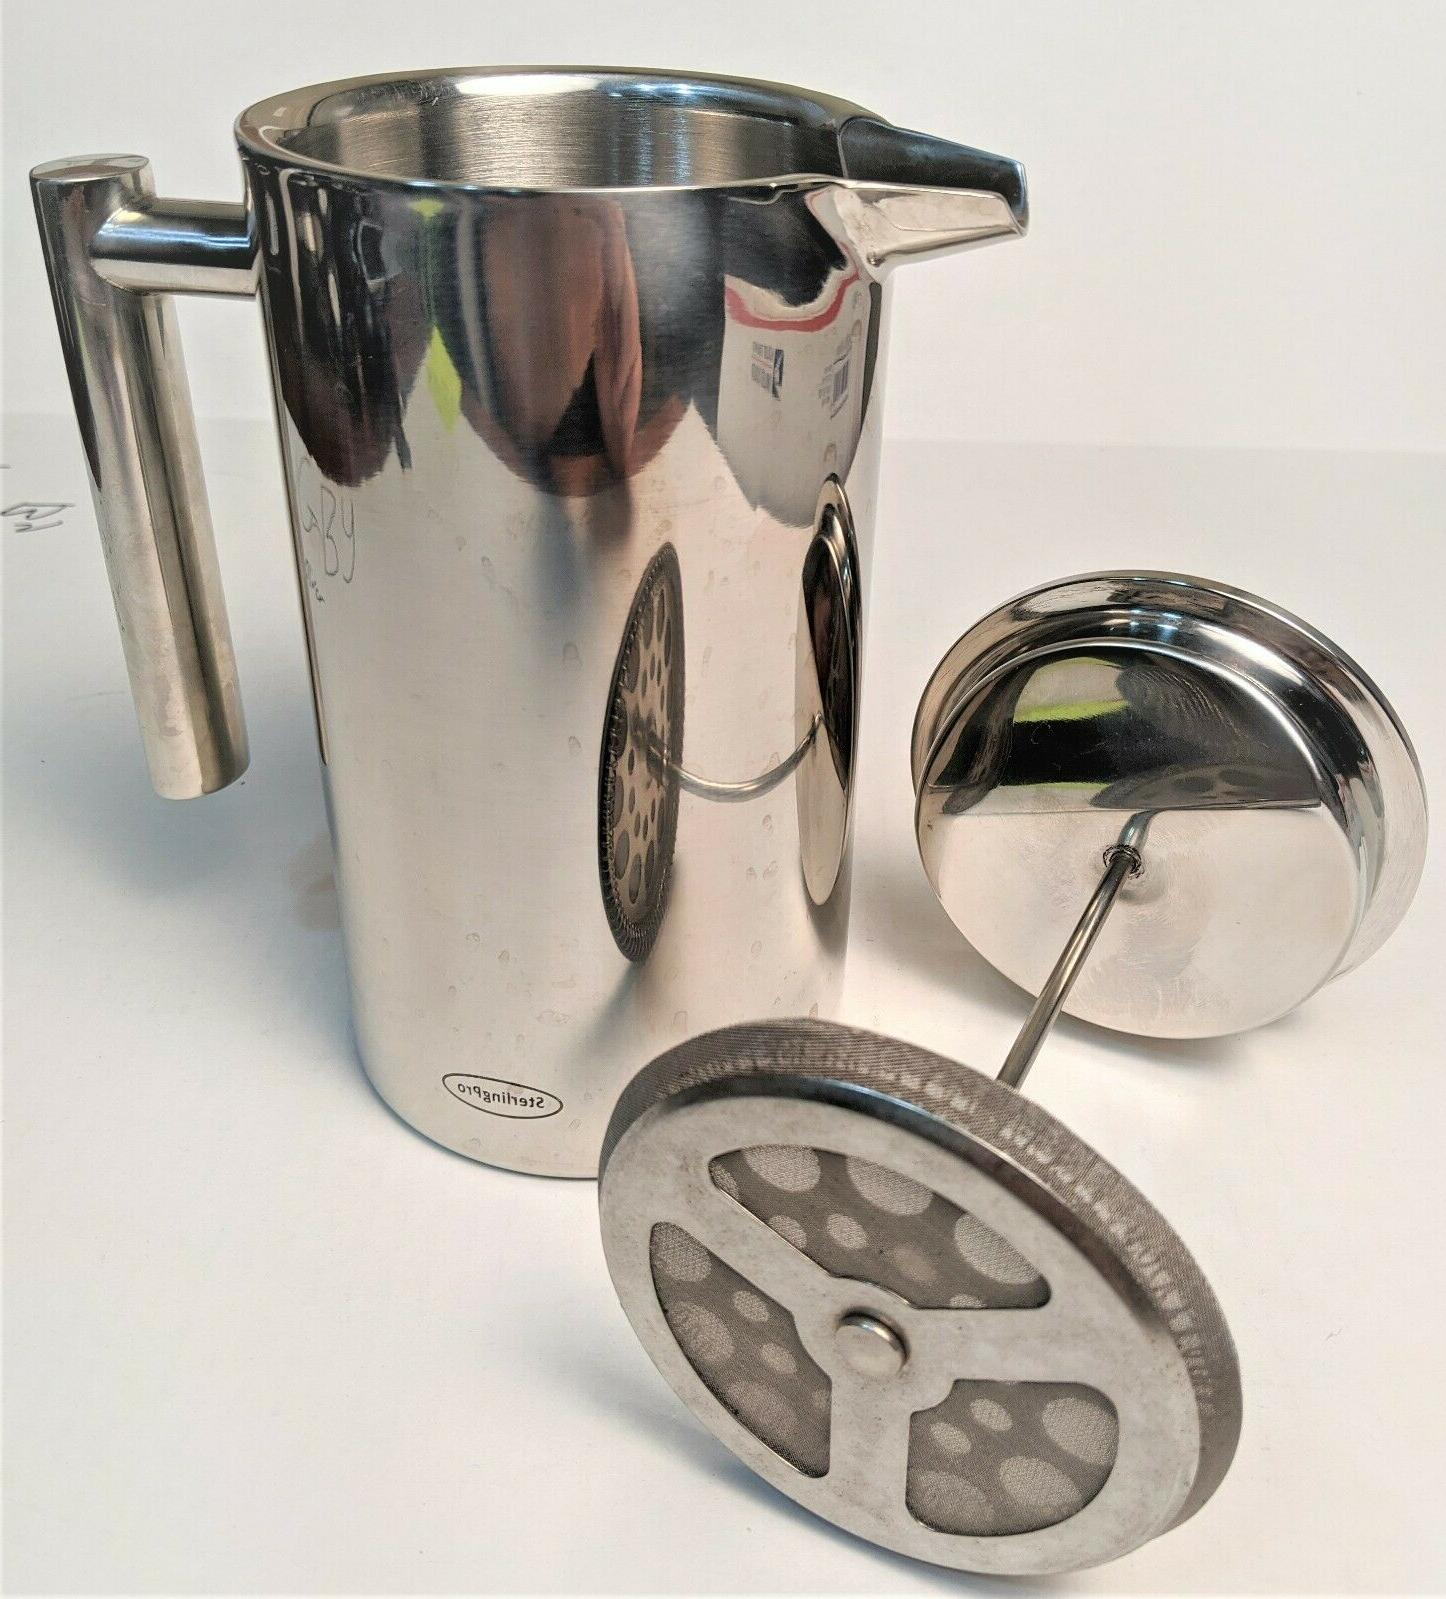 dbl wall stainless steel french coffee press